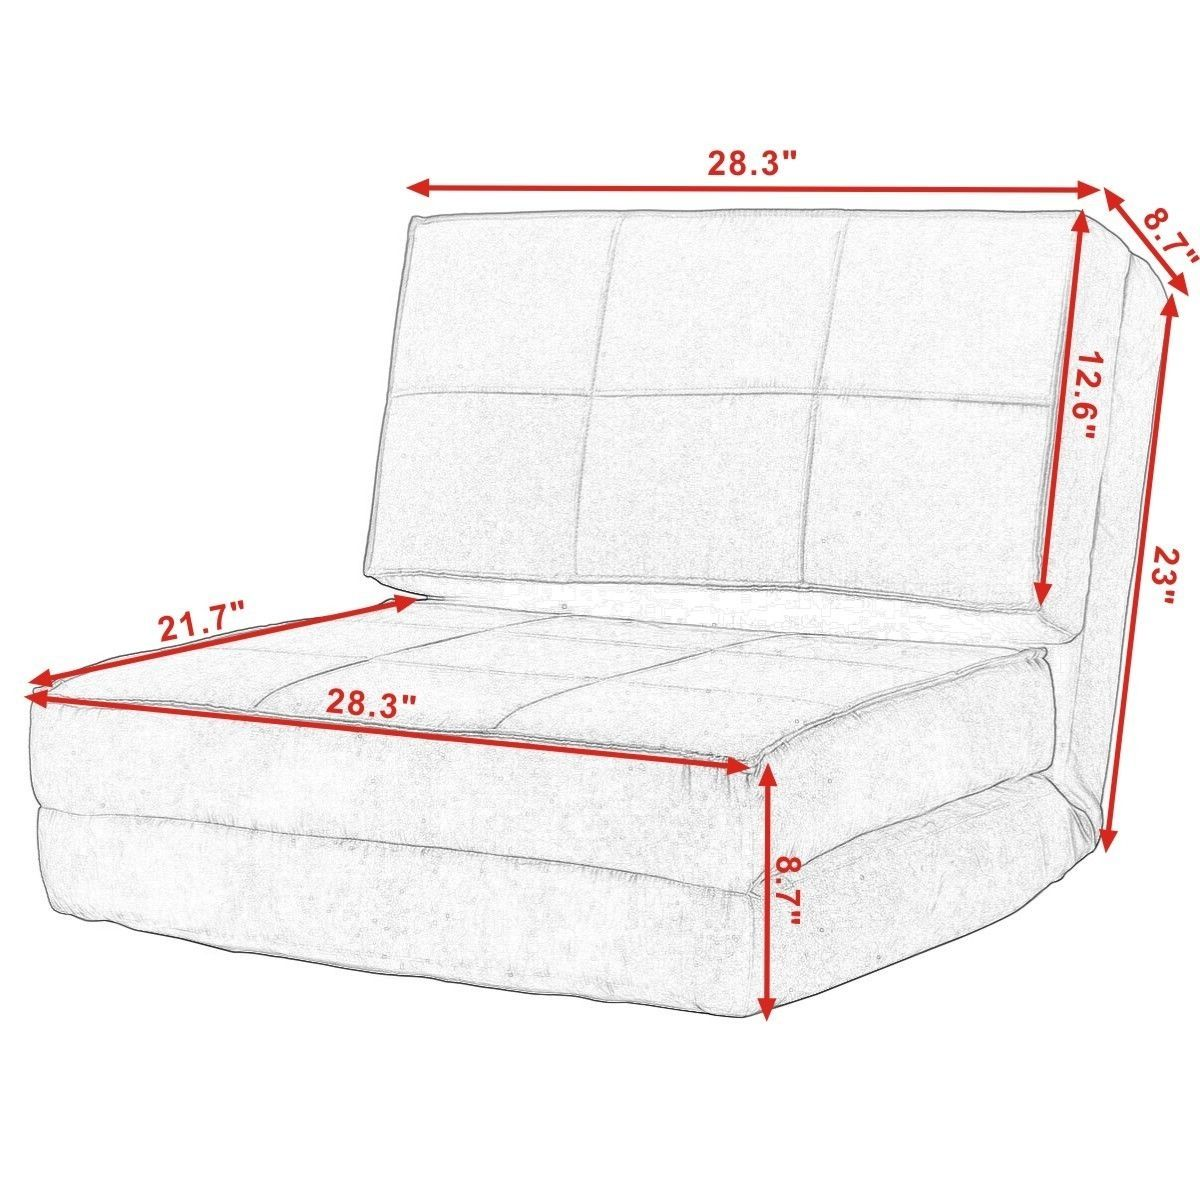 Convertible Lounger Folding Sofa Sleeper Bed Em 2020 Almofadas